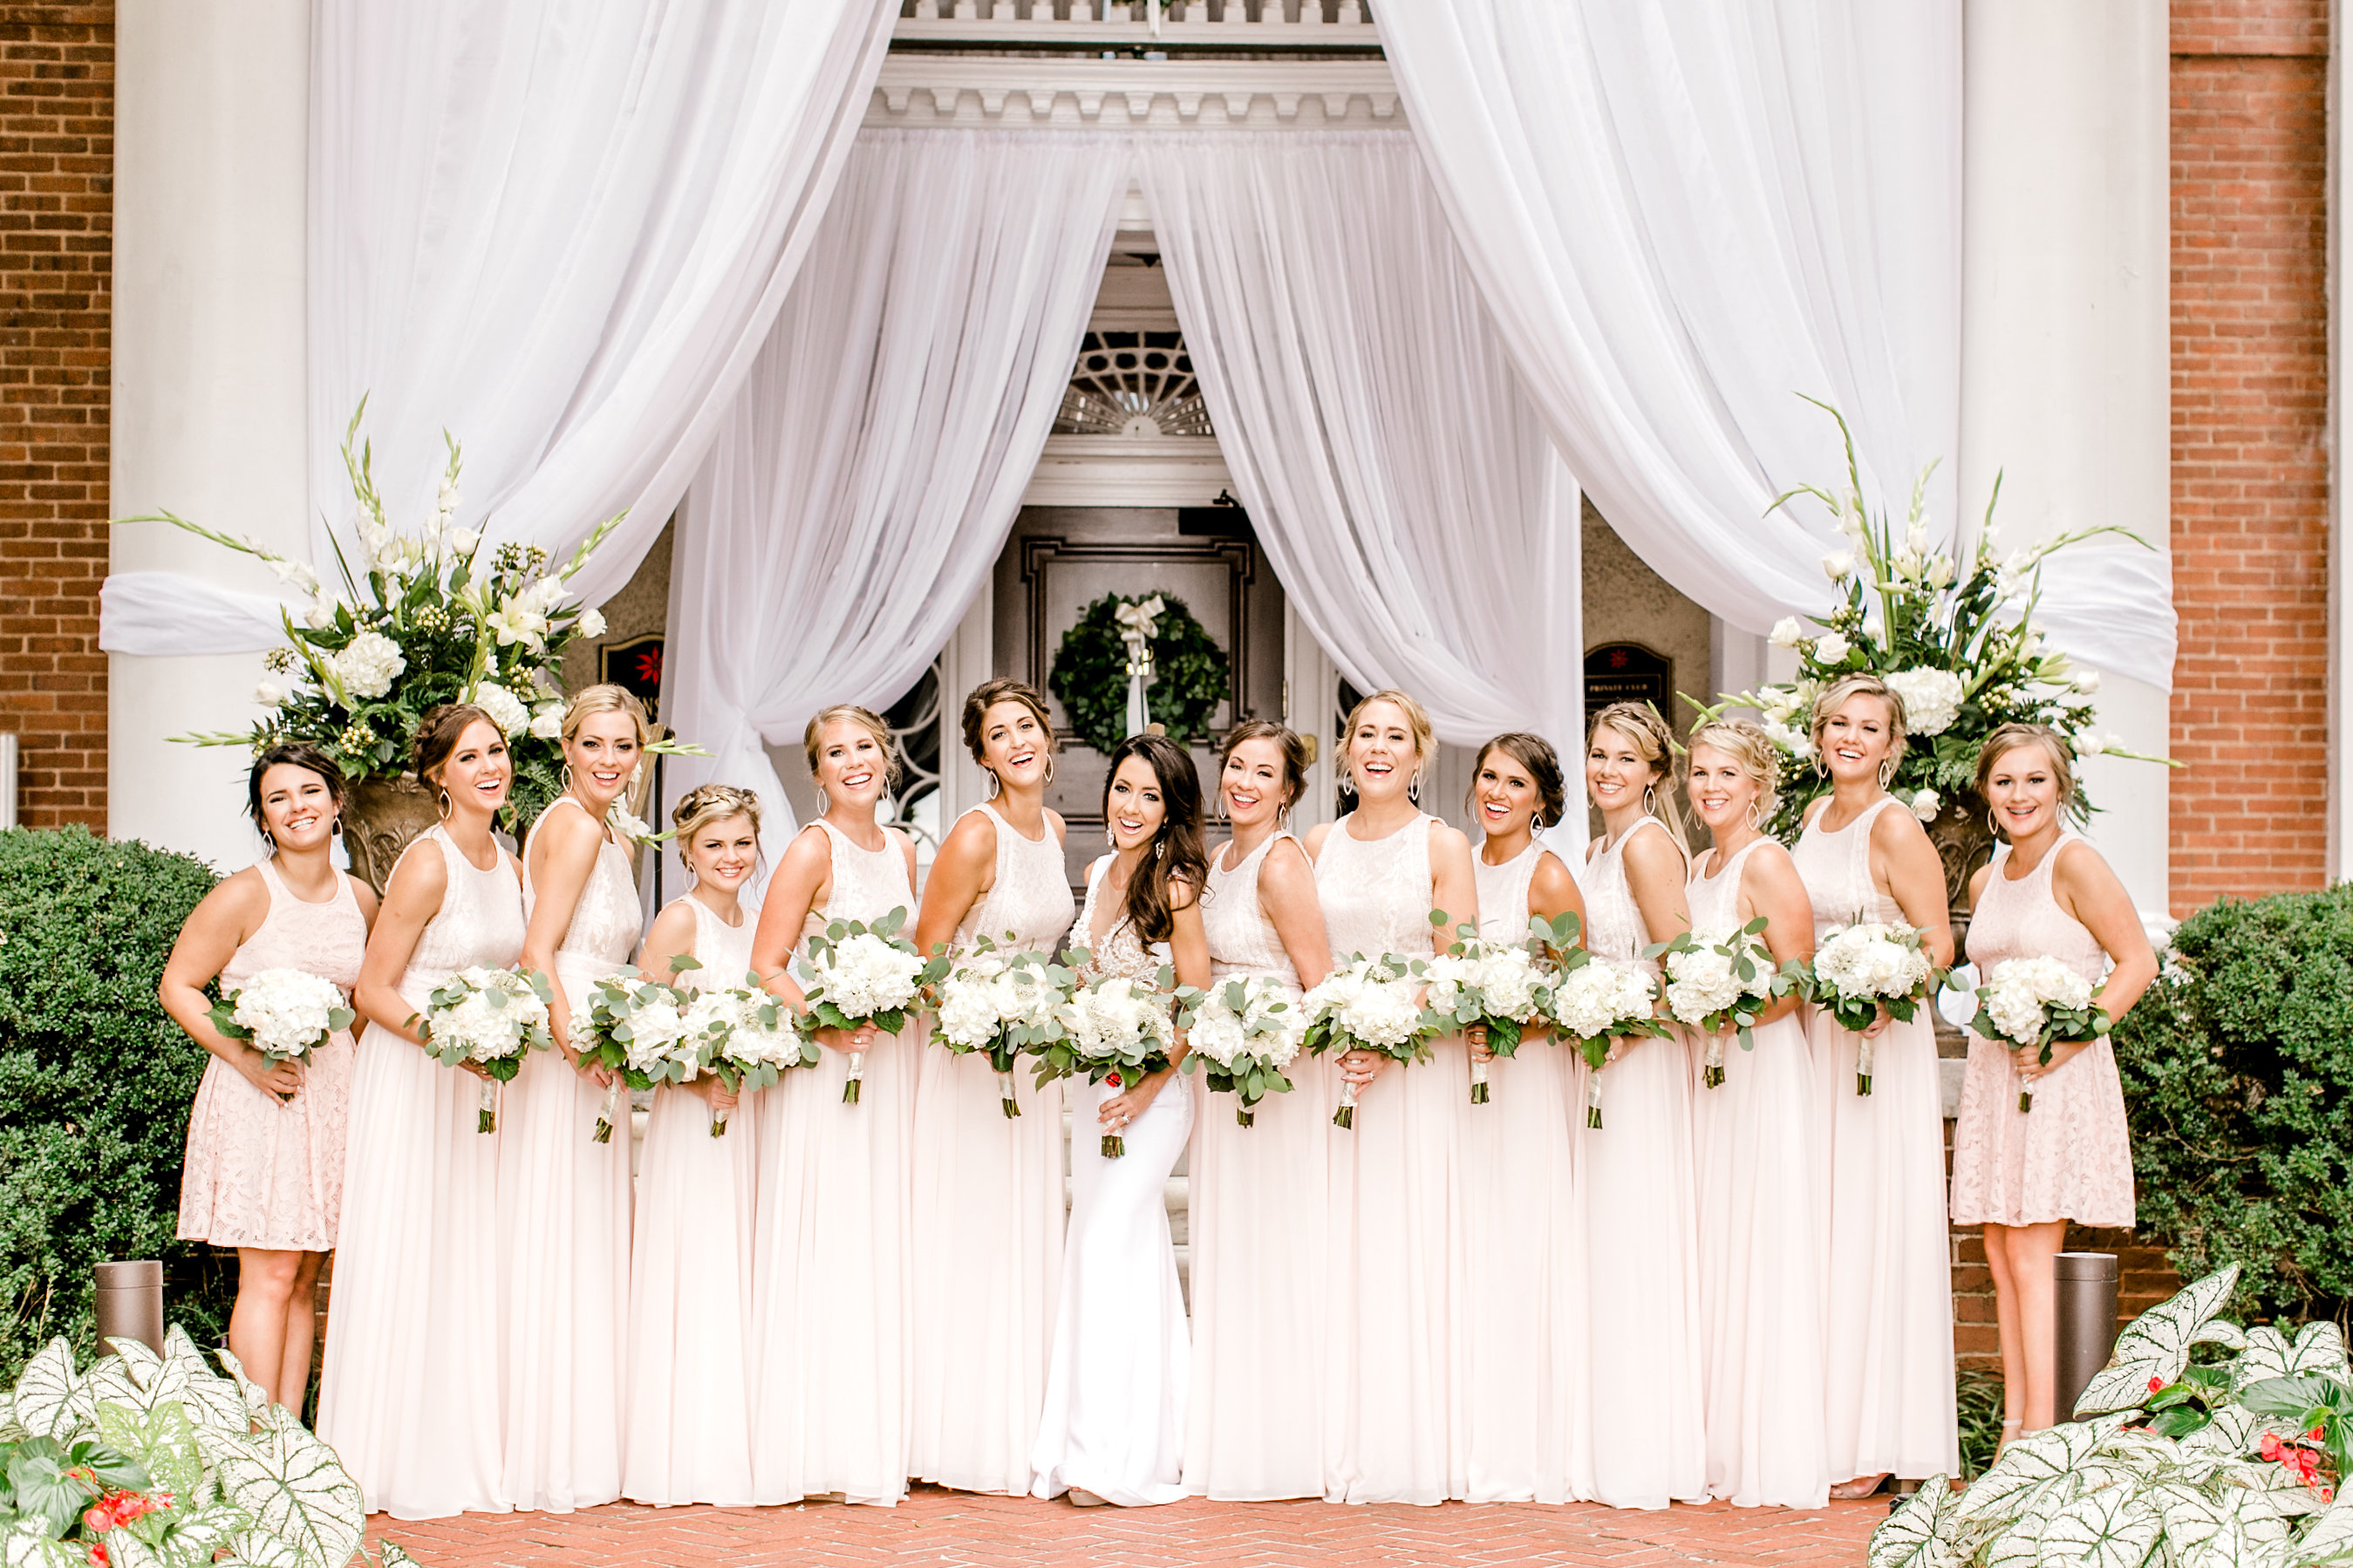 wedding curtains behind bridesmaids